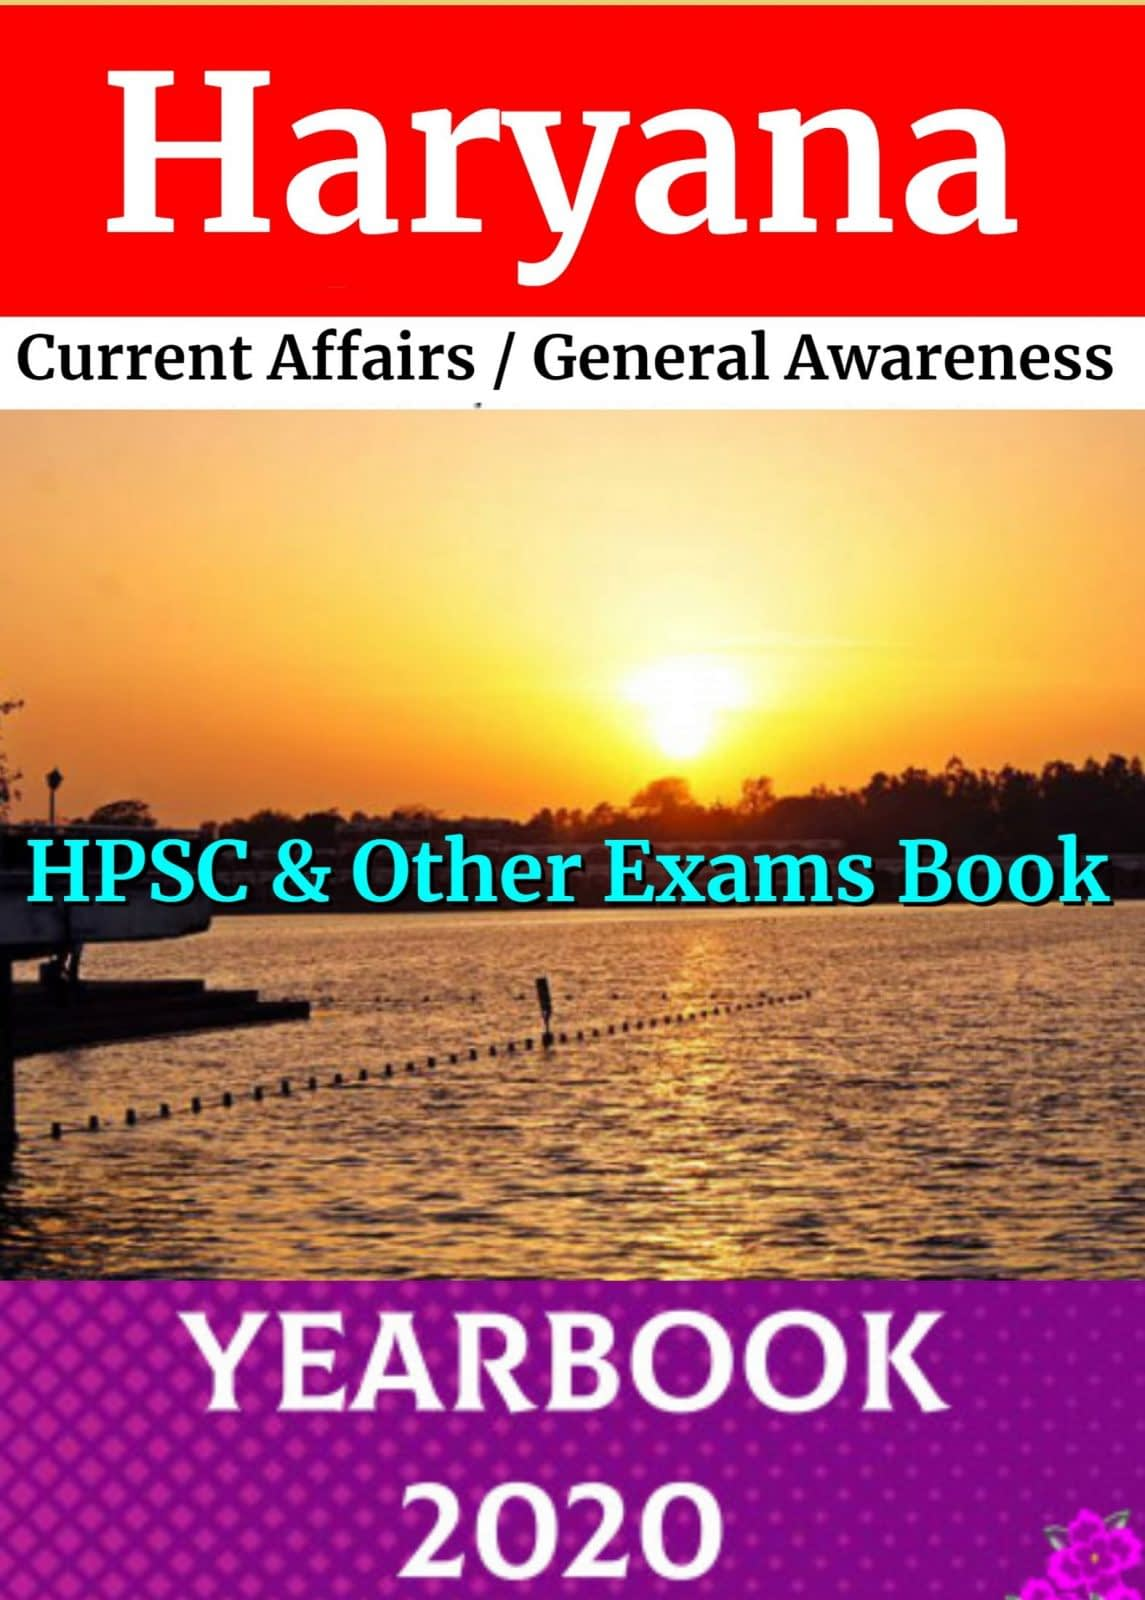 Haryana Current Affairs General Knowledge Yearbook 2020